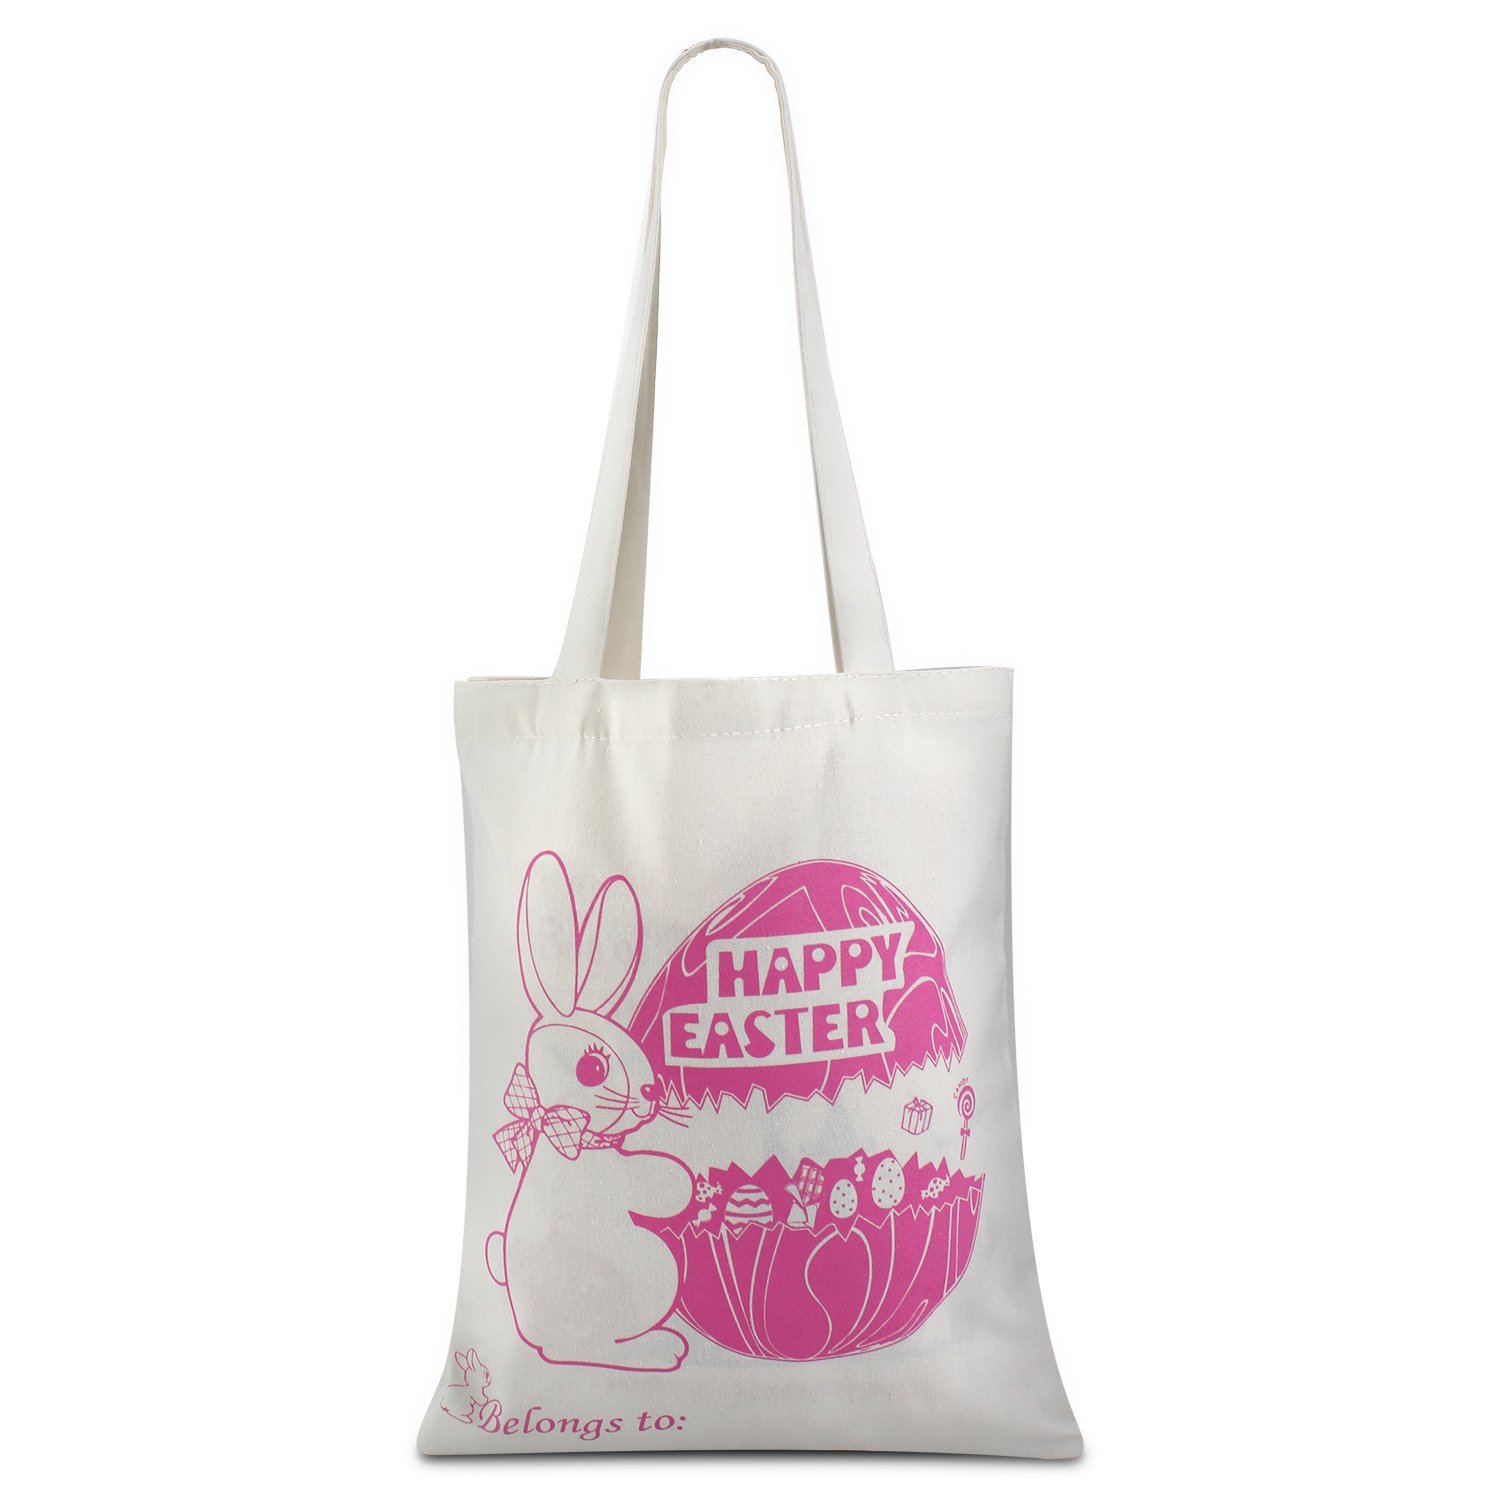 Cheap easter bag ideas find easter bag ideas deals on line at get quotations easter gift bag easter presents for kids from easter bunny basket personalized easter eggs basketsbags for negle Gallery